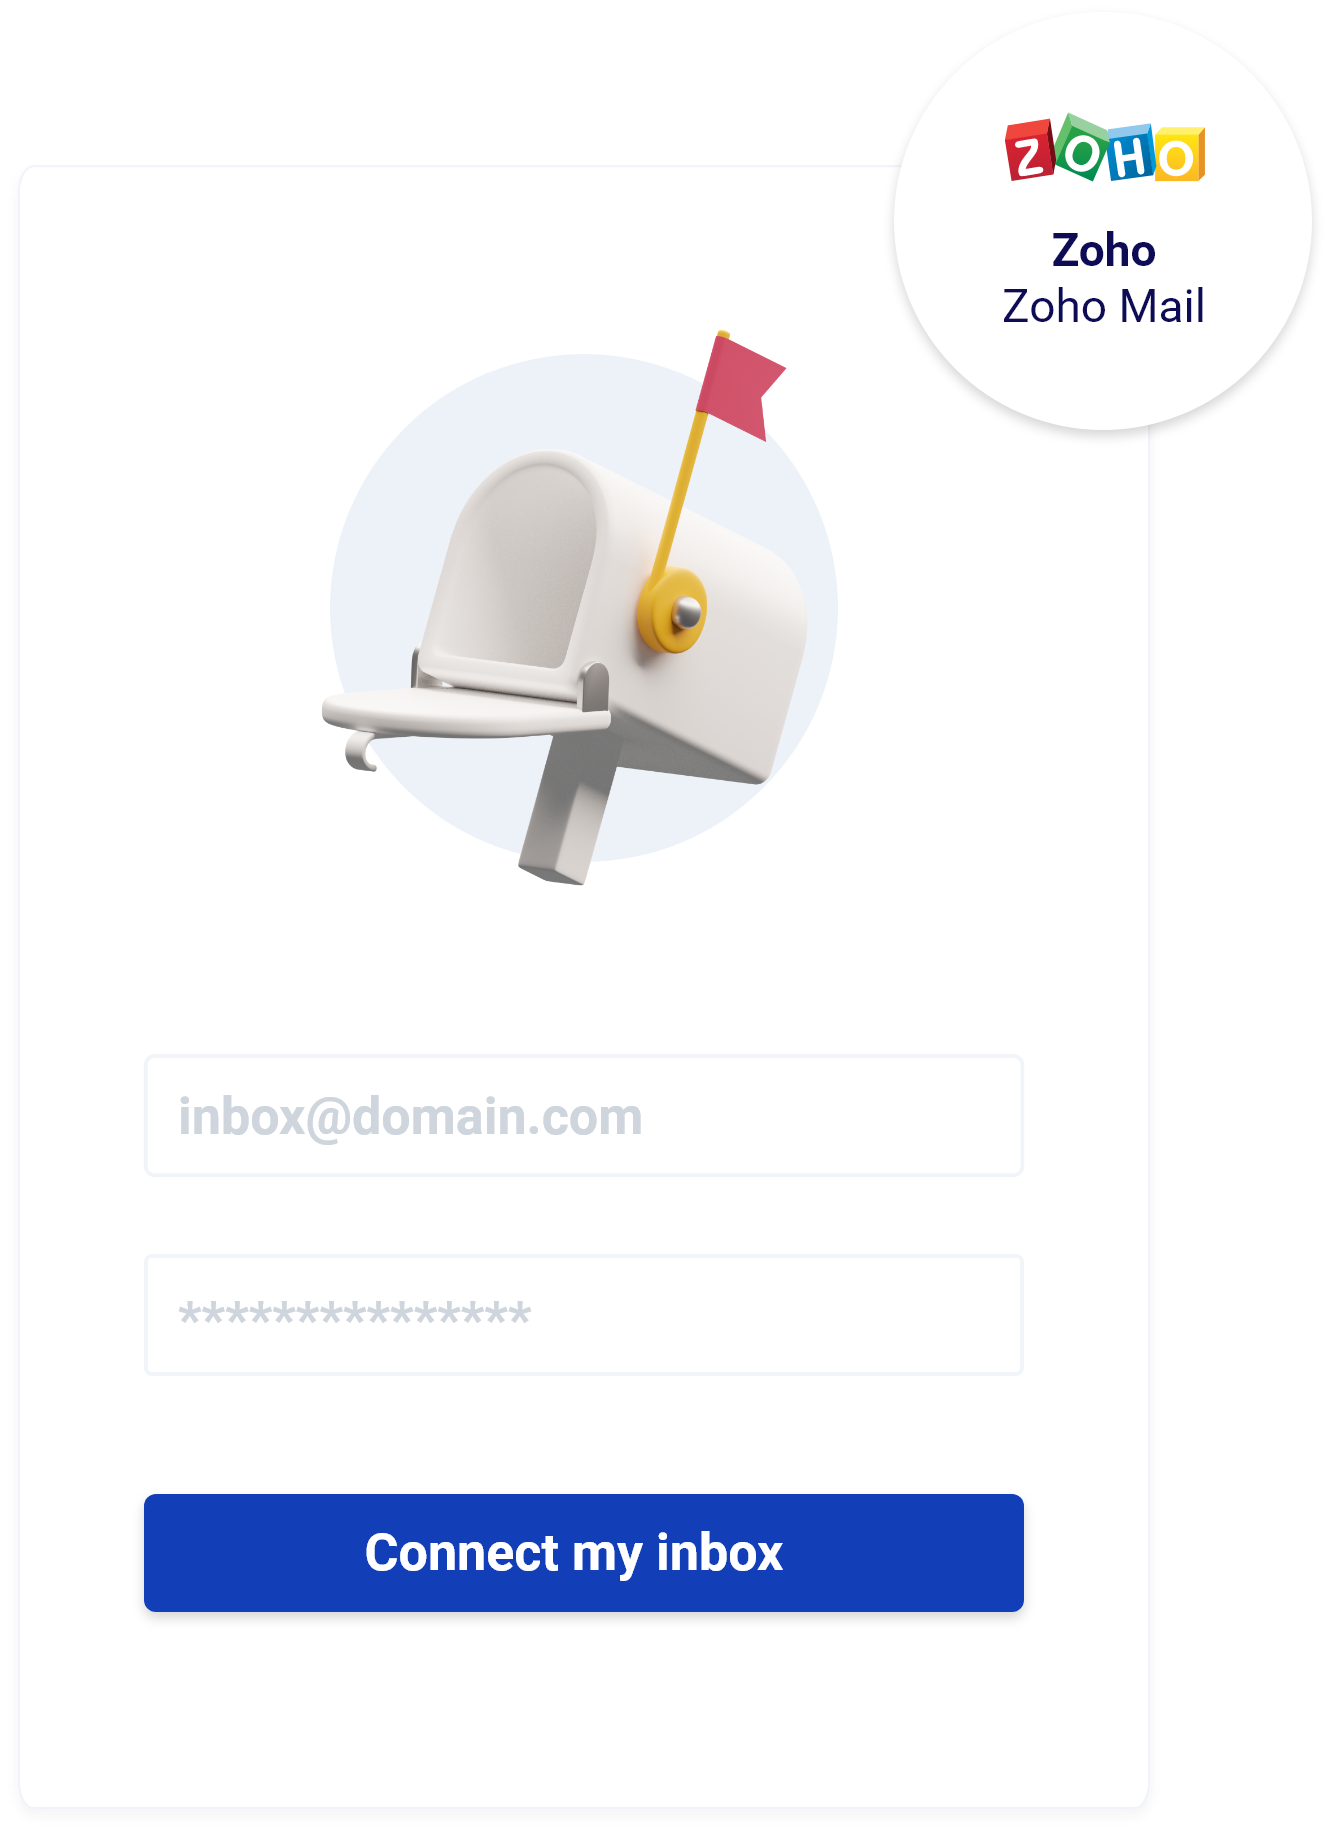 Warm-up your Zoho inbox-cold email in UK